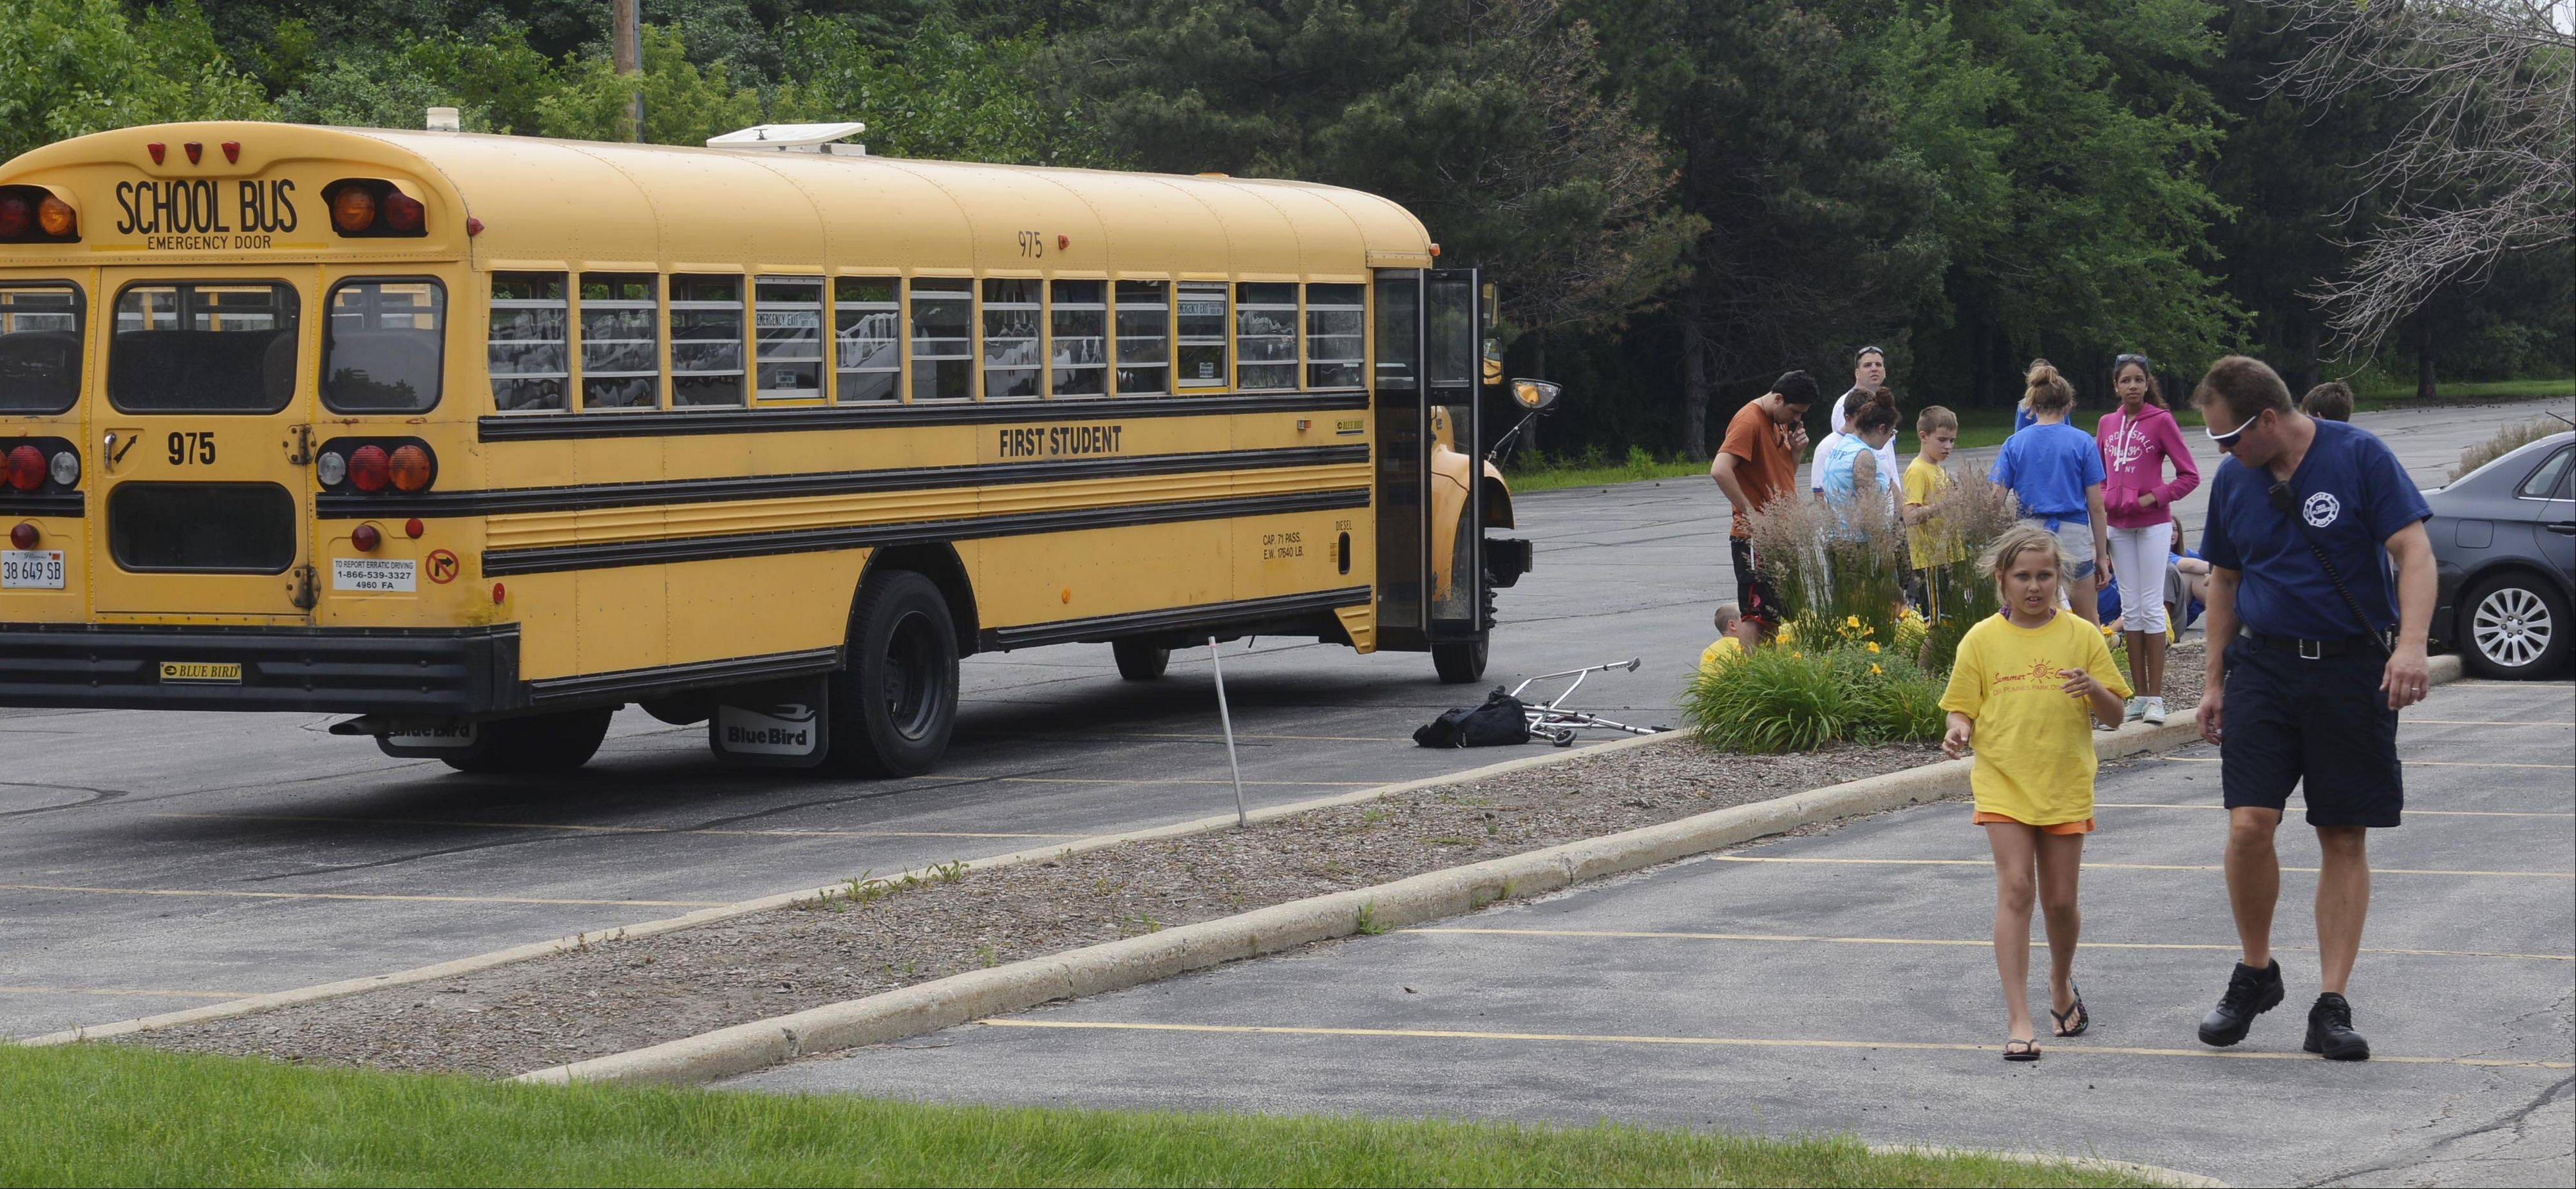 There were minor injuries following an accident Friday morning involving two school buses that were transporting children from a Des Plaines Park District program.